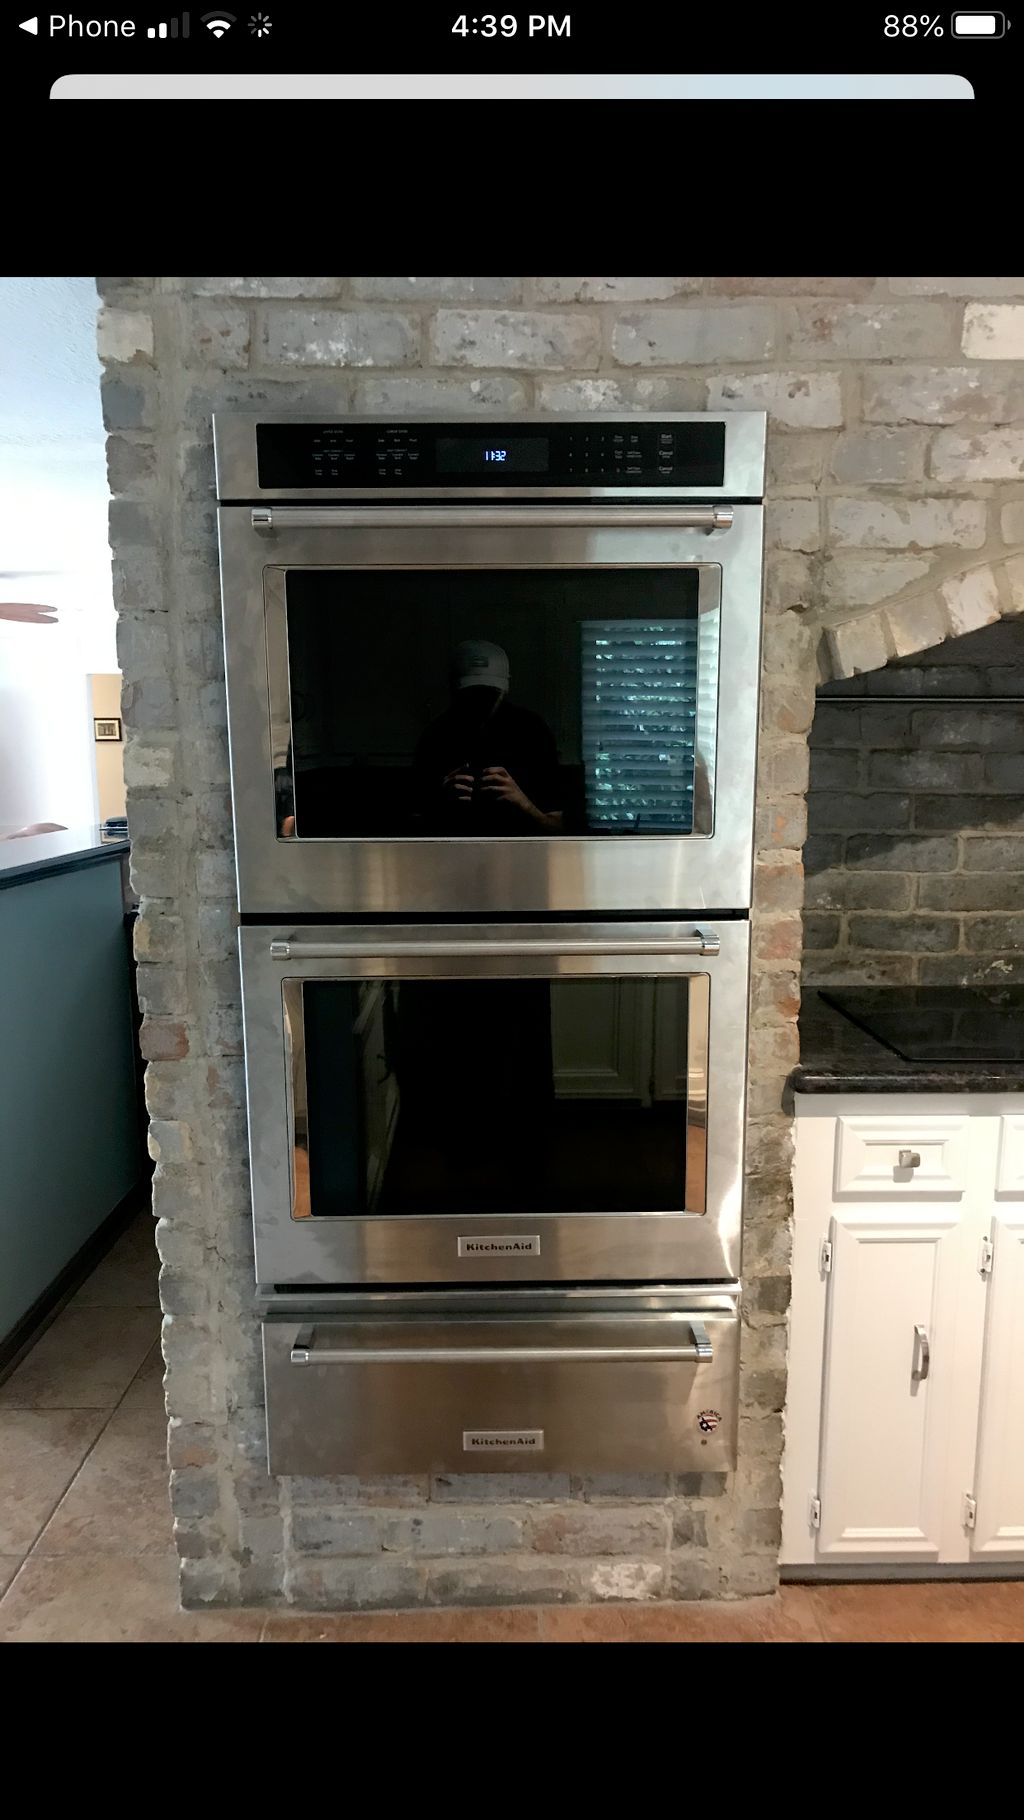 Brick removal for 30 inch oven and warming drawer